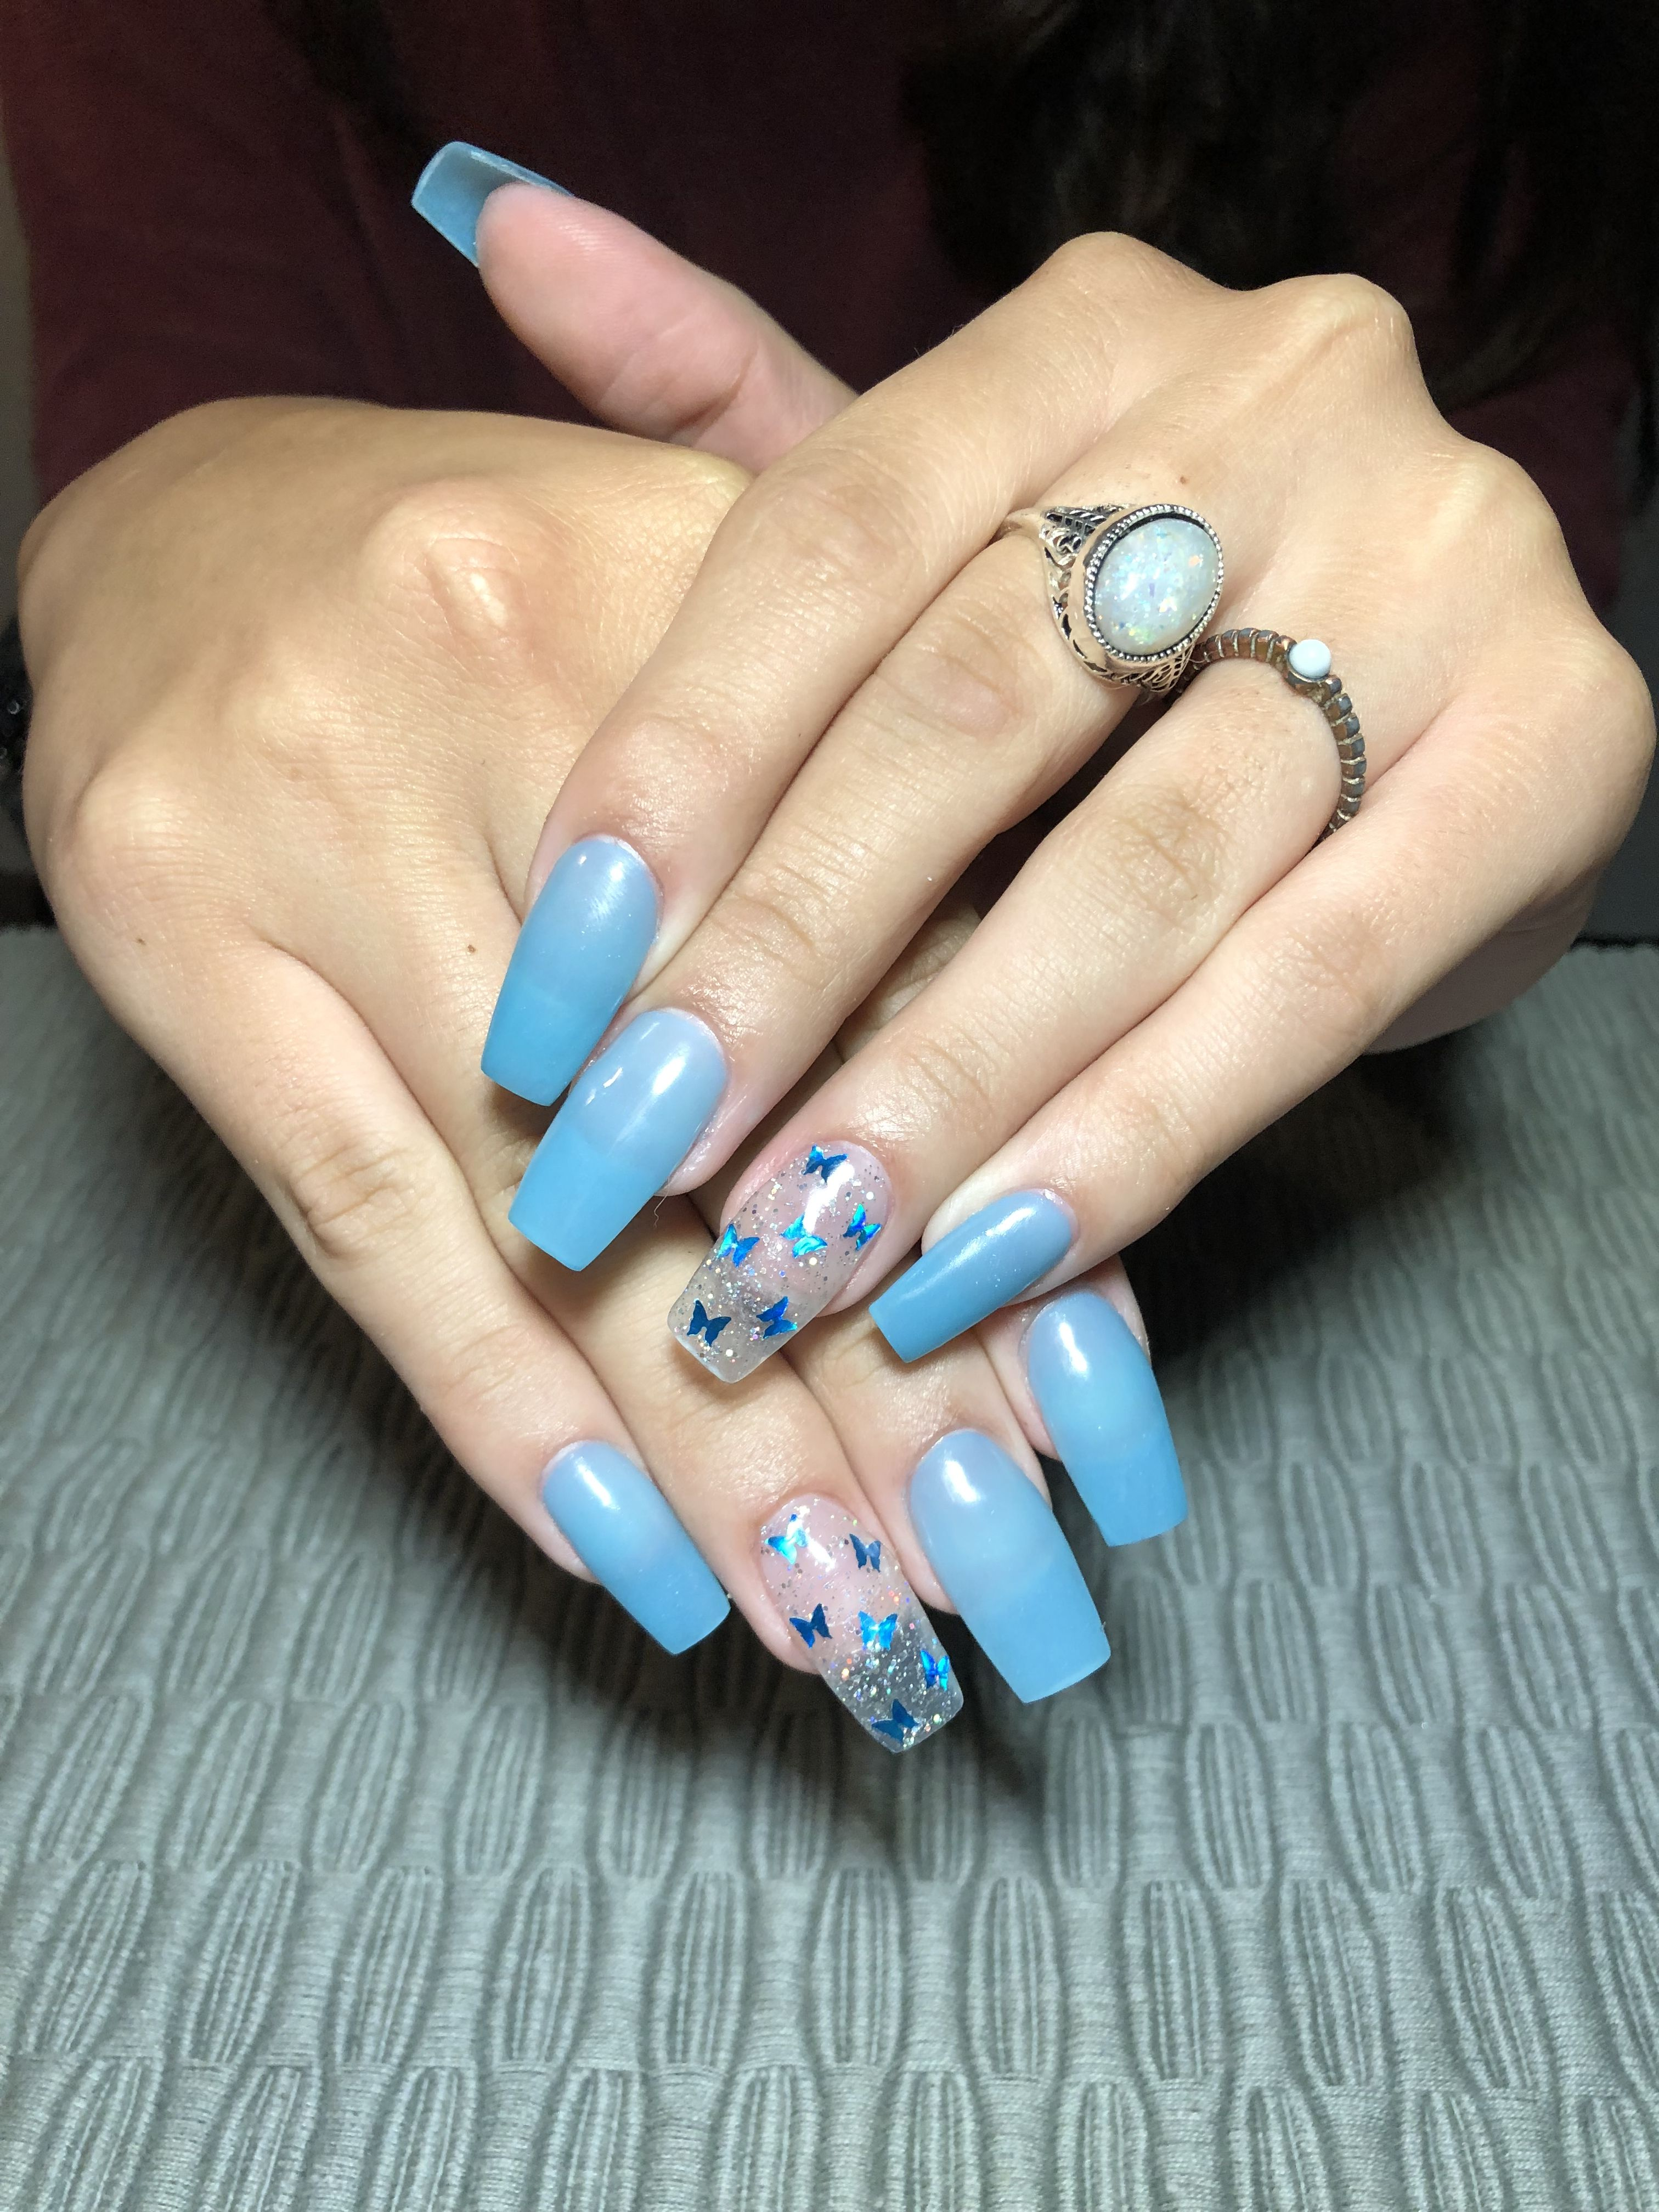 Pin By Krystal On Nails In 2020 Blue Nails Fire Nails Cute Acrylic Nails